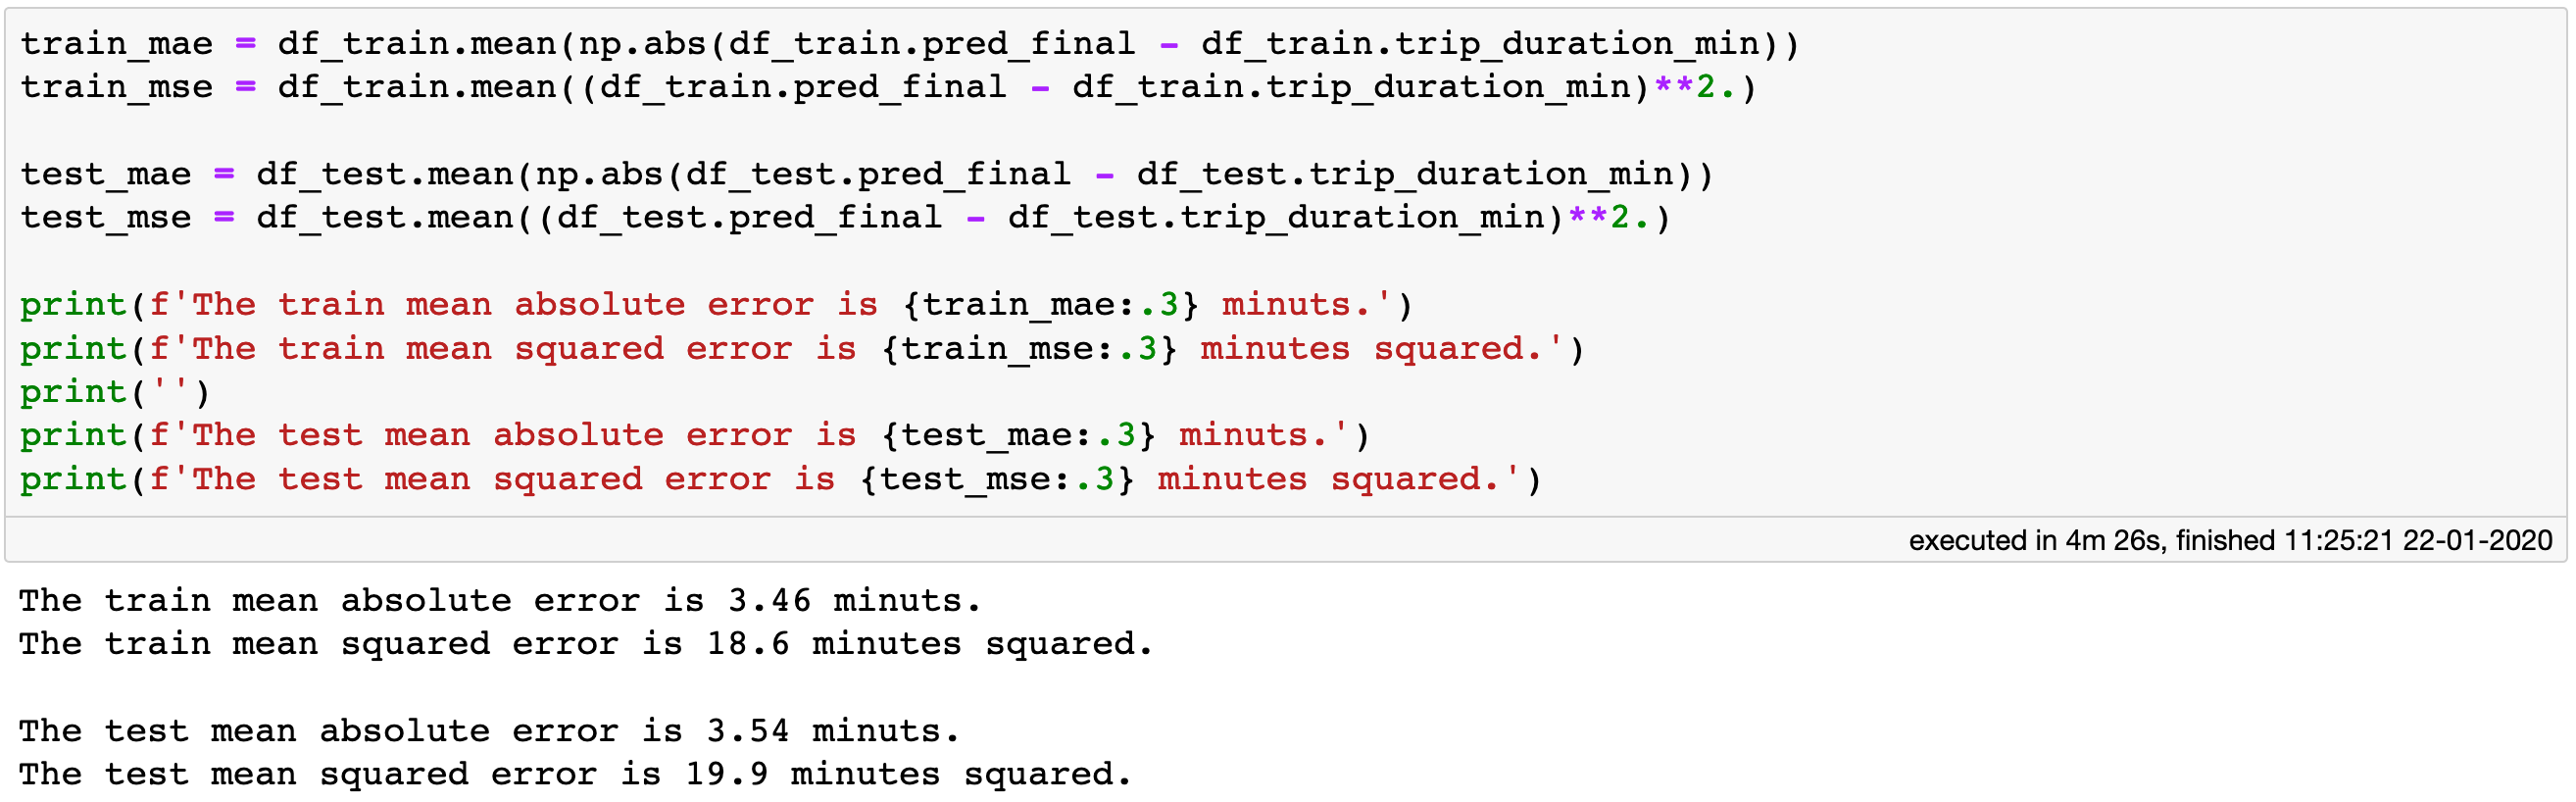 Computing the absolute and mean square errors for both the train and the test sets.